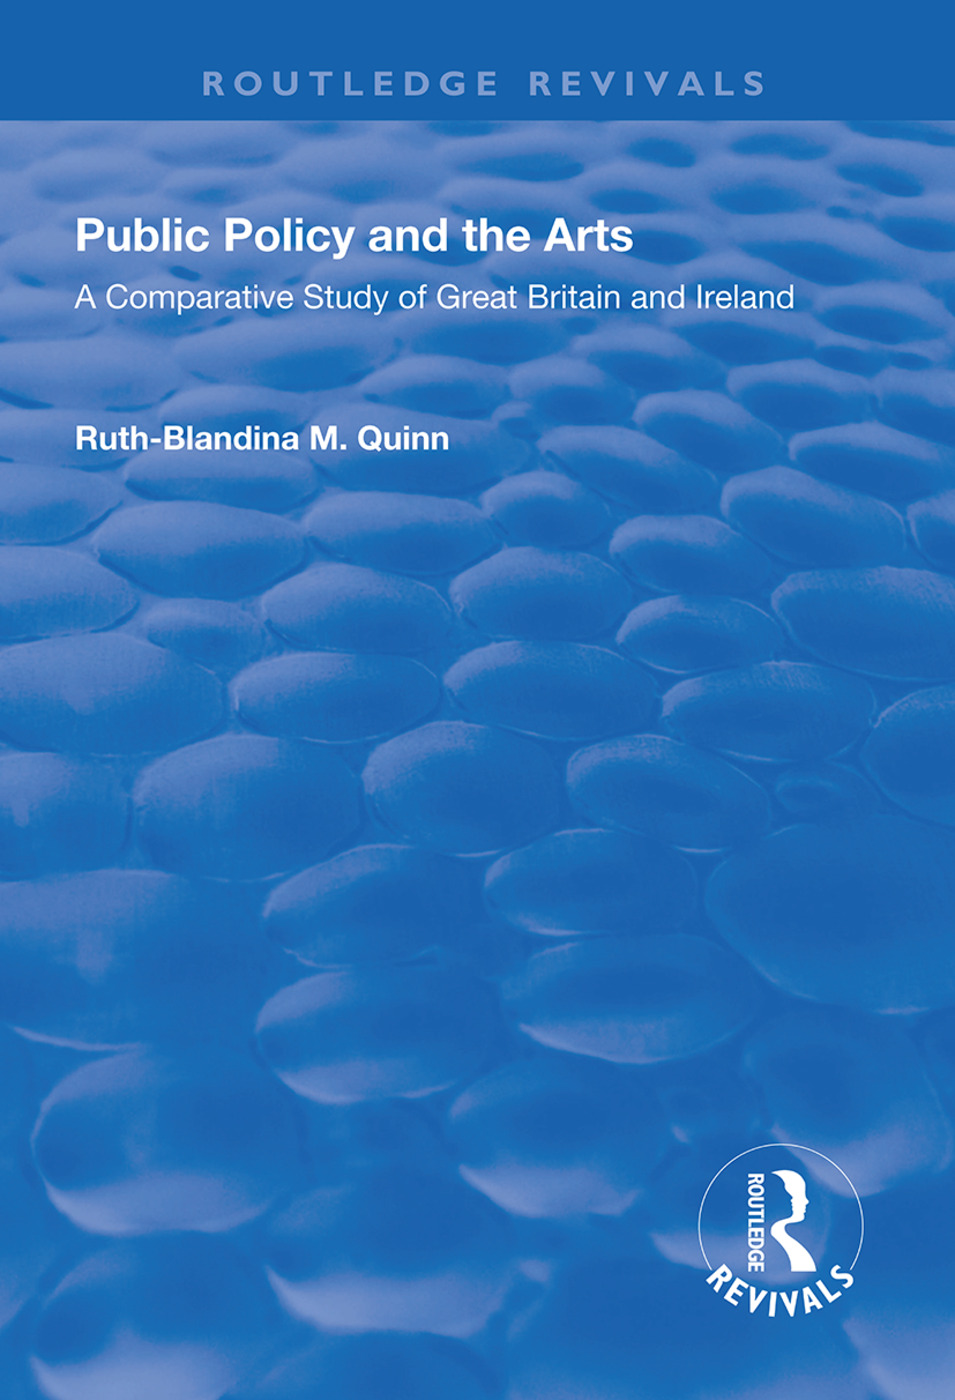 Public Policy and the Arts: A Comparative Study of Great Britain and Ireland